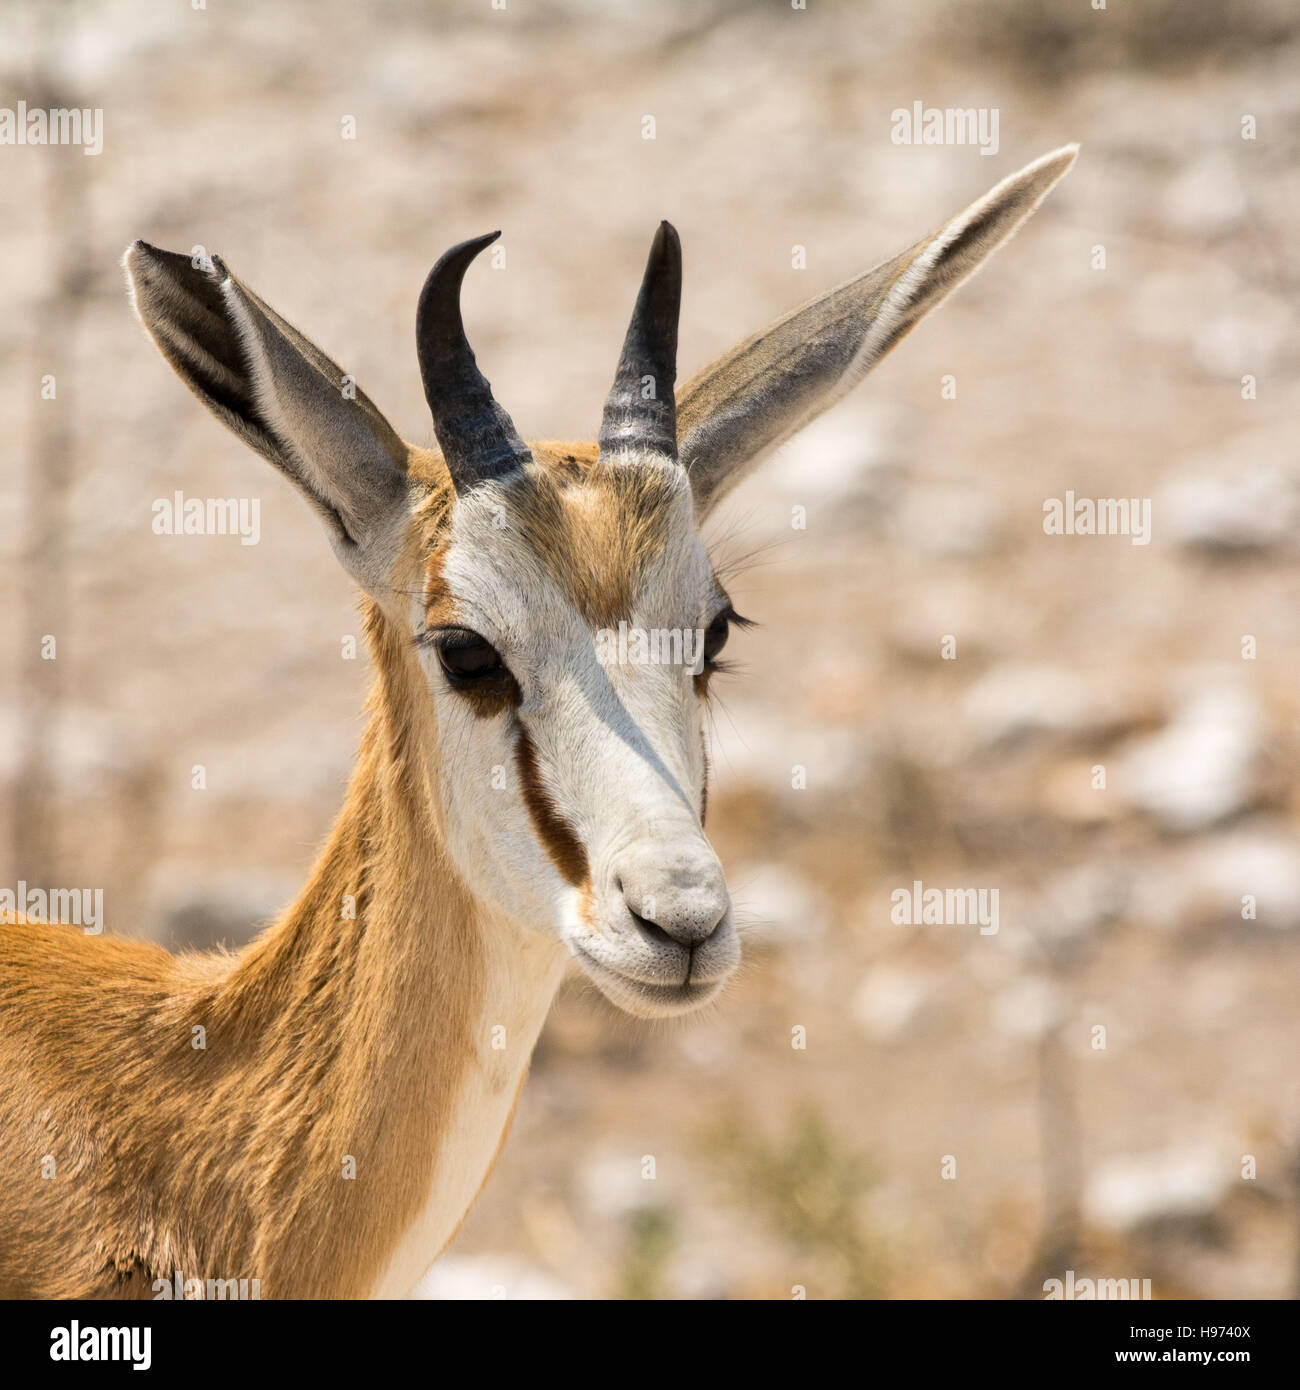 Portrait of a Springbok, seen in namibia, africa. - Stock Image